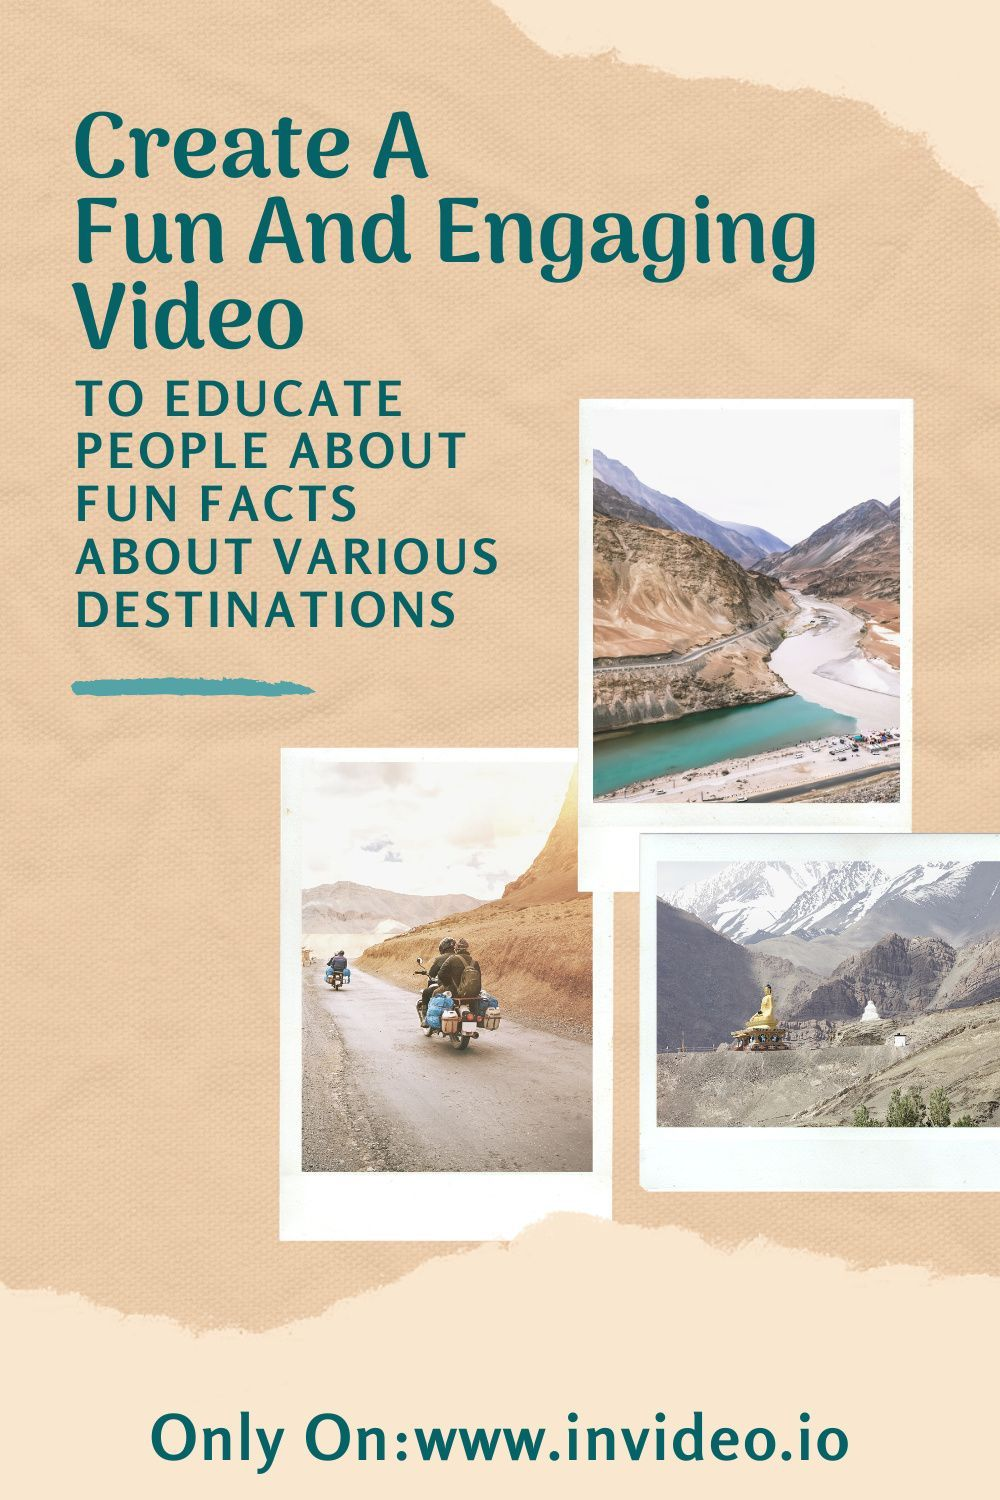 Video Template Tourism 101 Slideshow In 2021 Pinterest Video Video Online Video Template